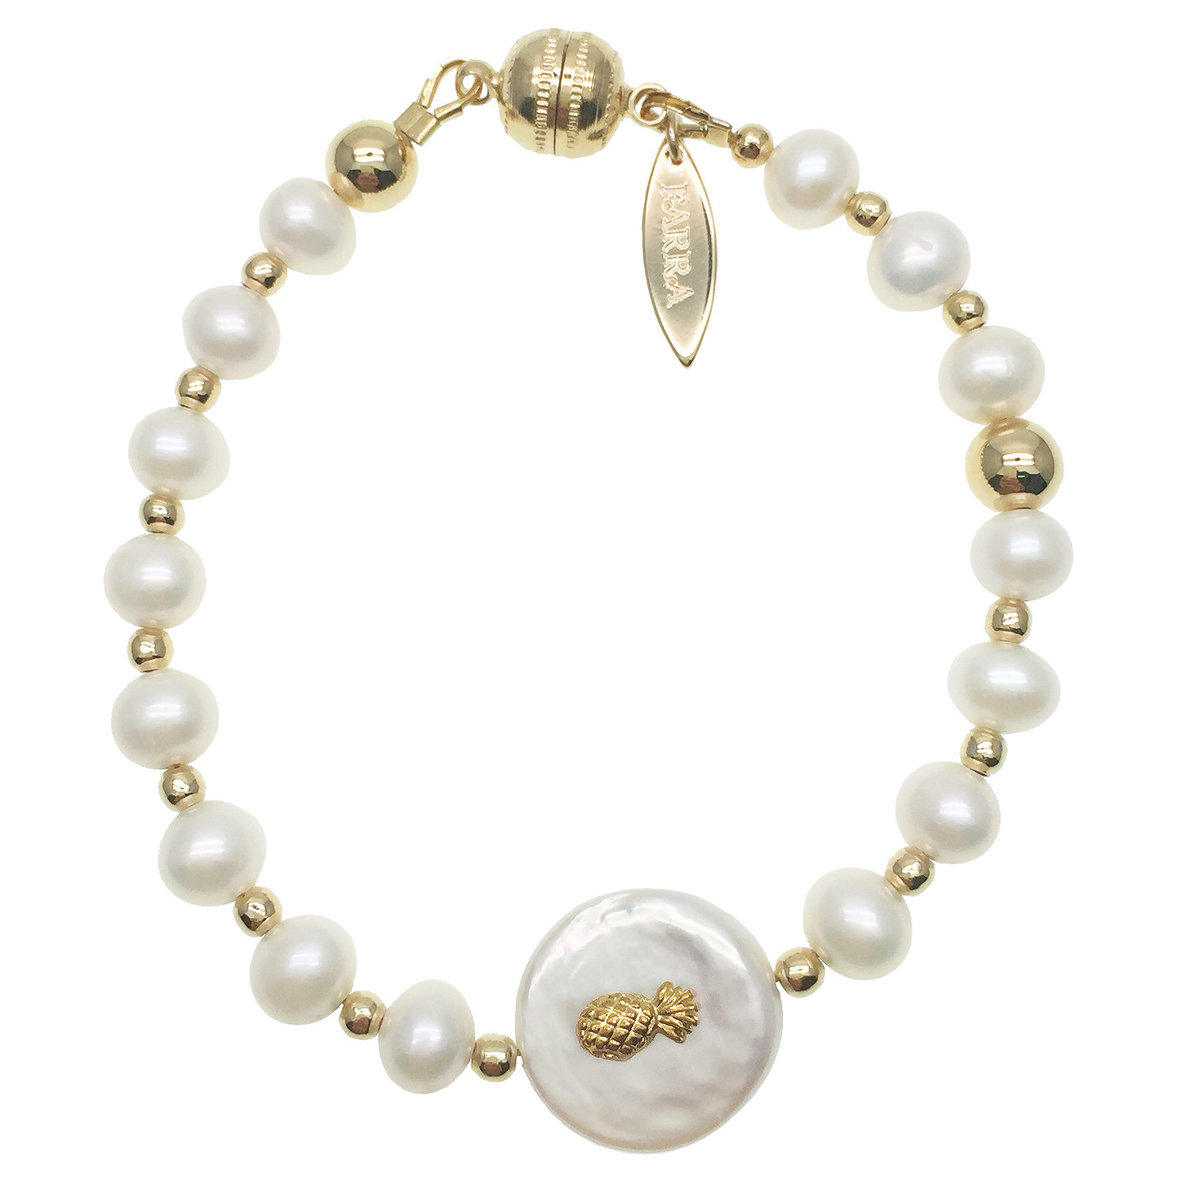 Freshwater Pearls With Pineapple Charm Bracelet